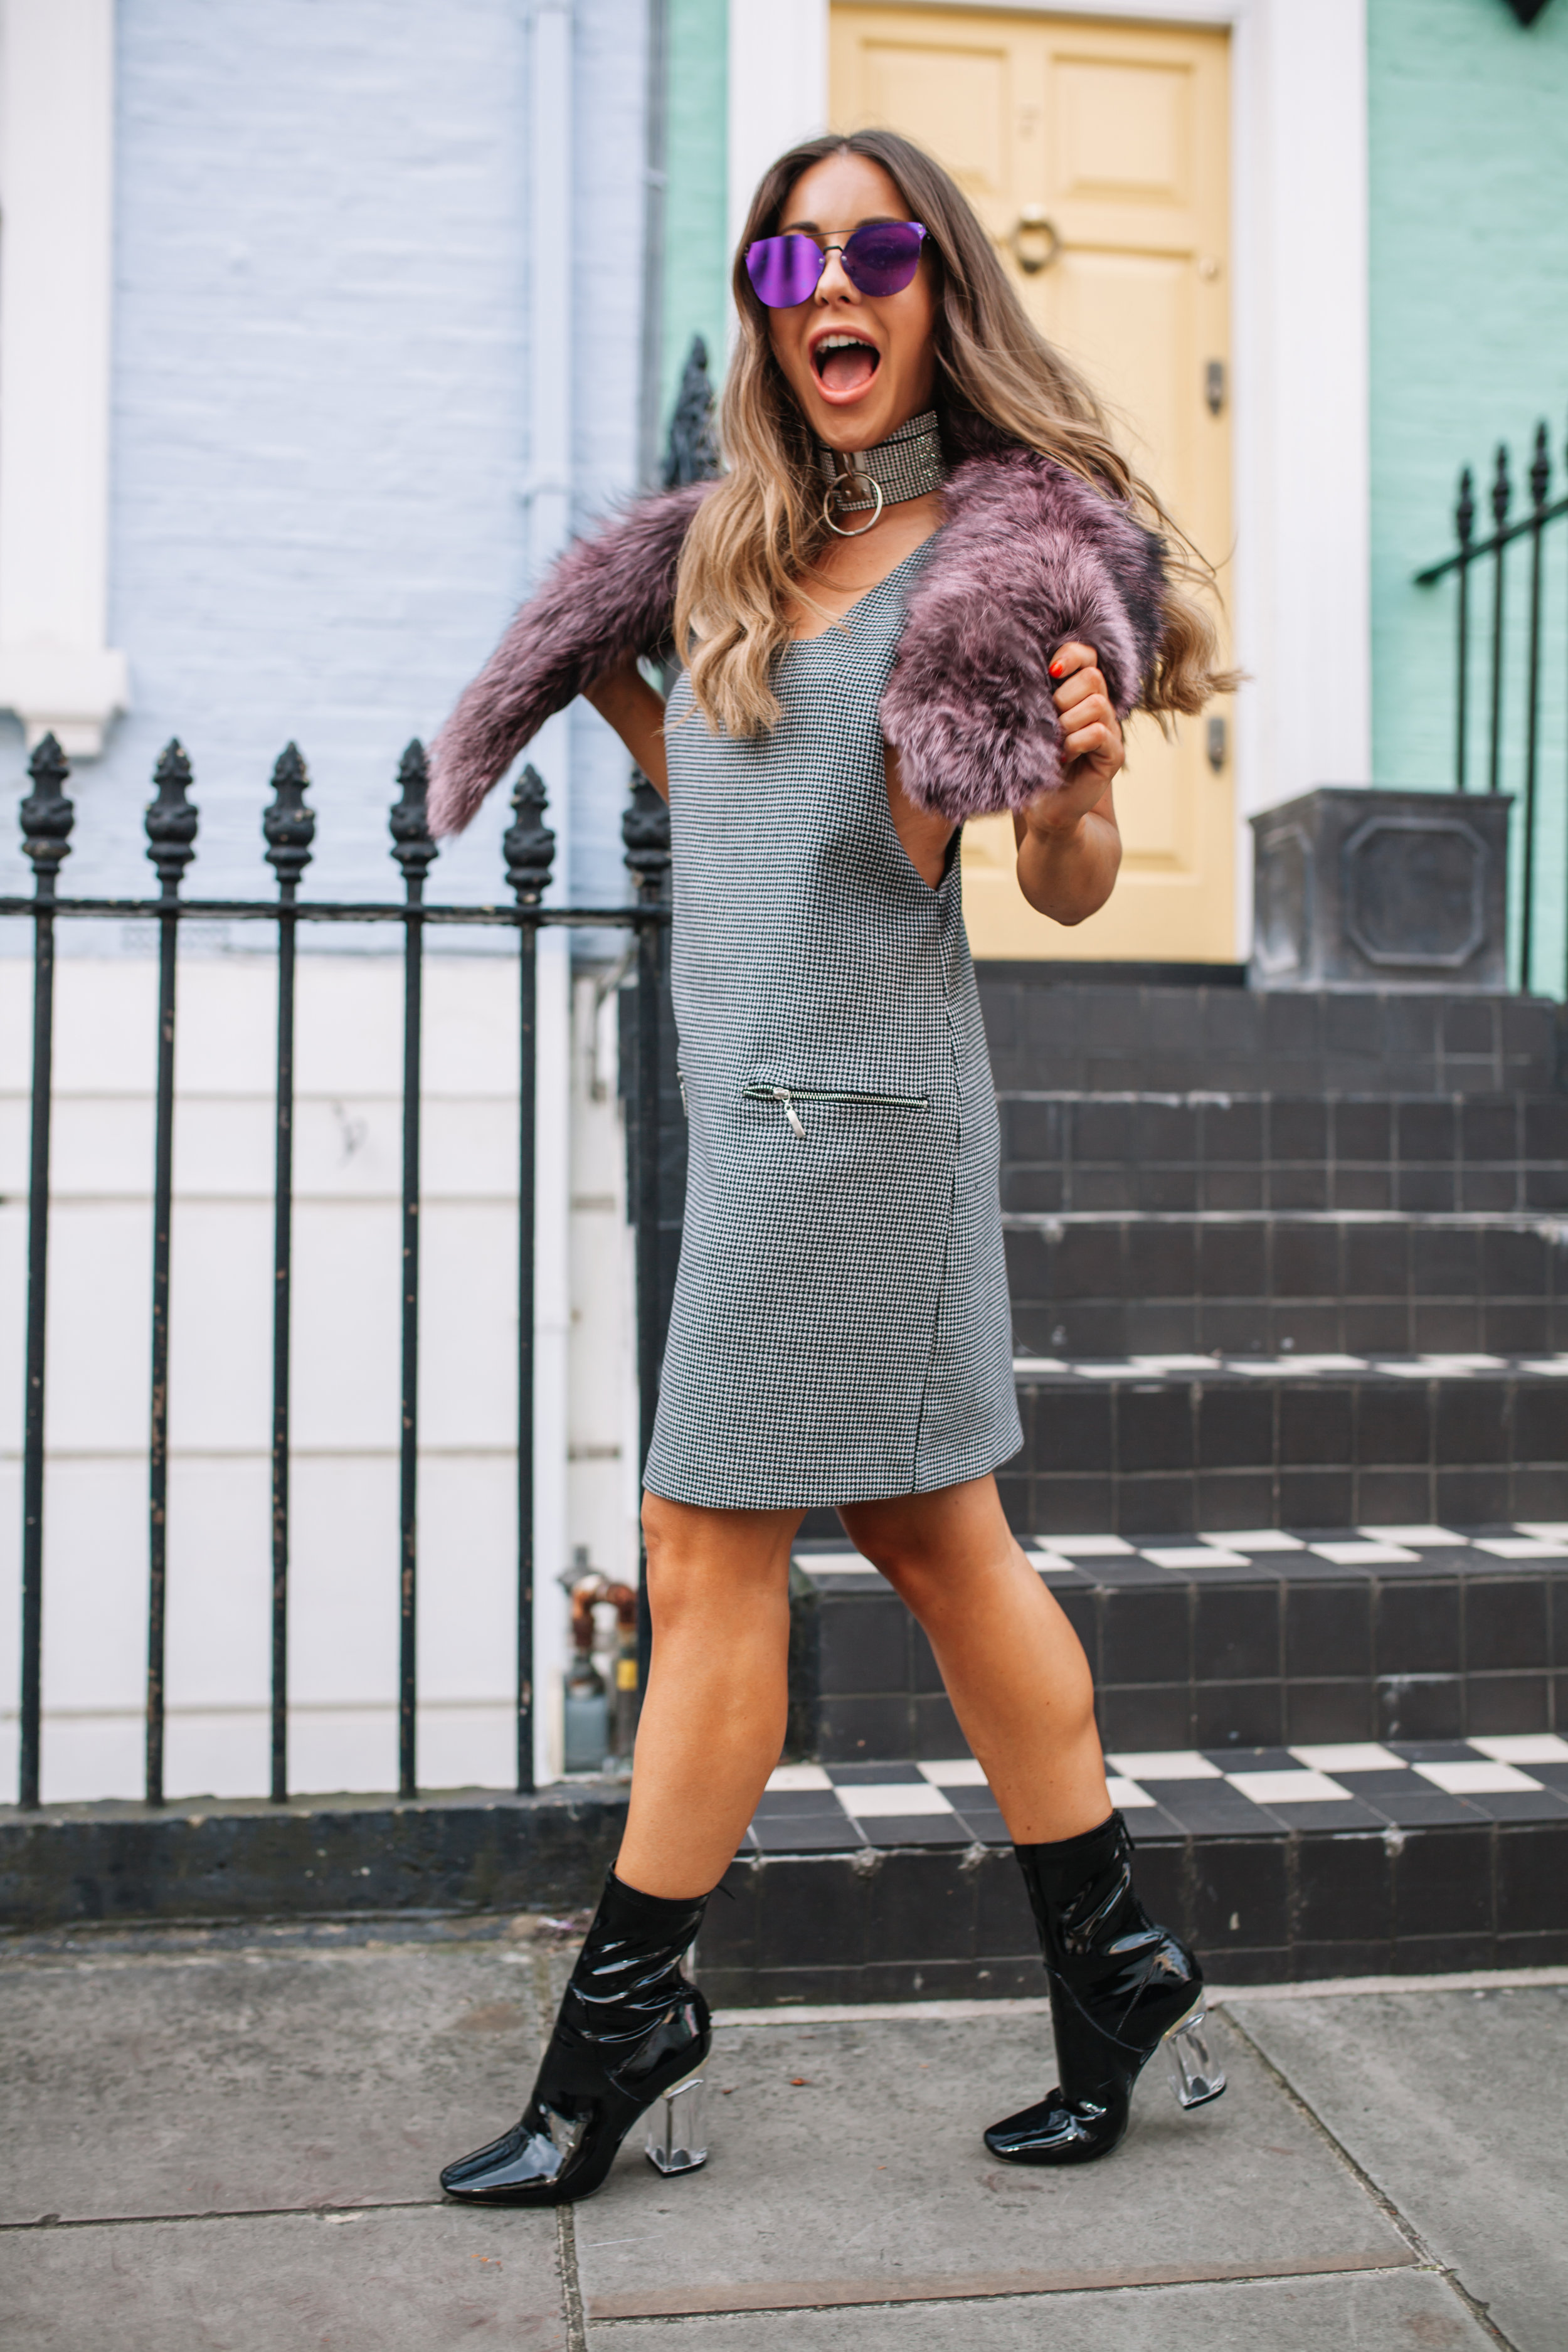 Louise_Thompson_Outfit3_MichaelaEfford__MG_7692.jpg